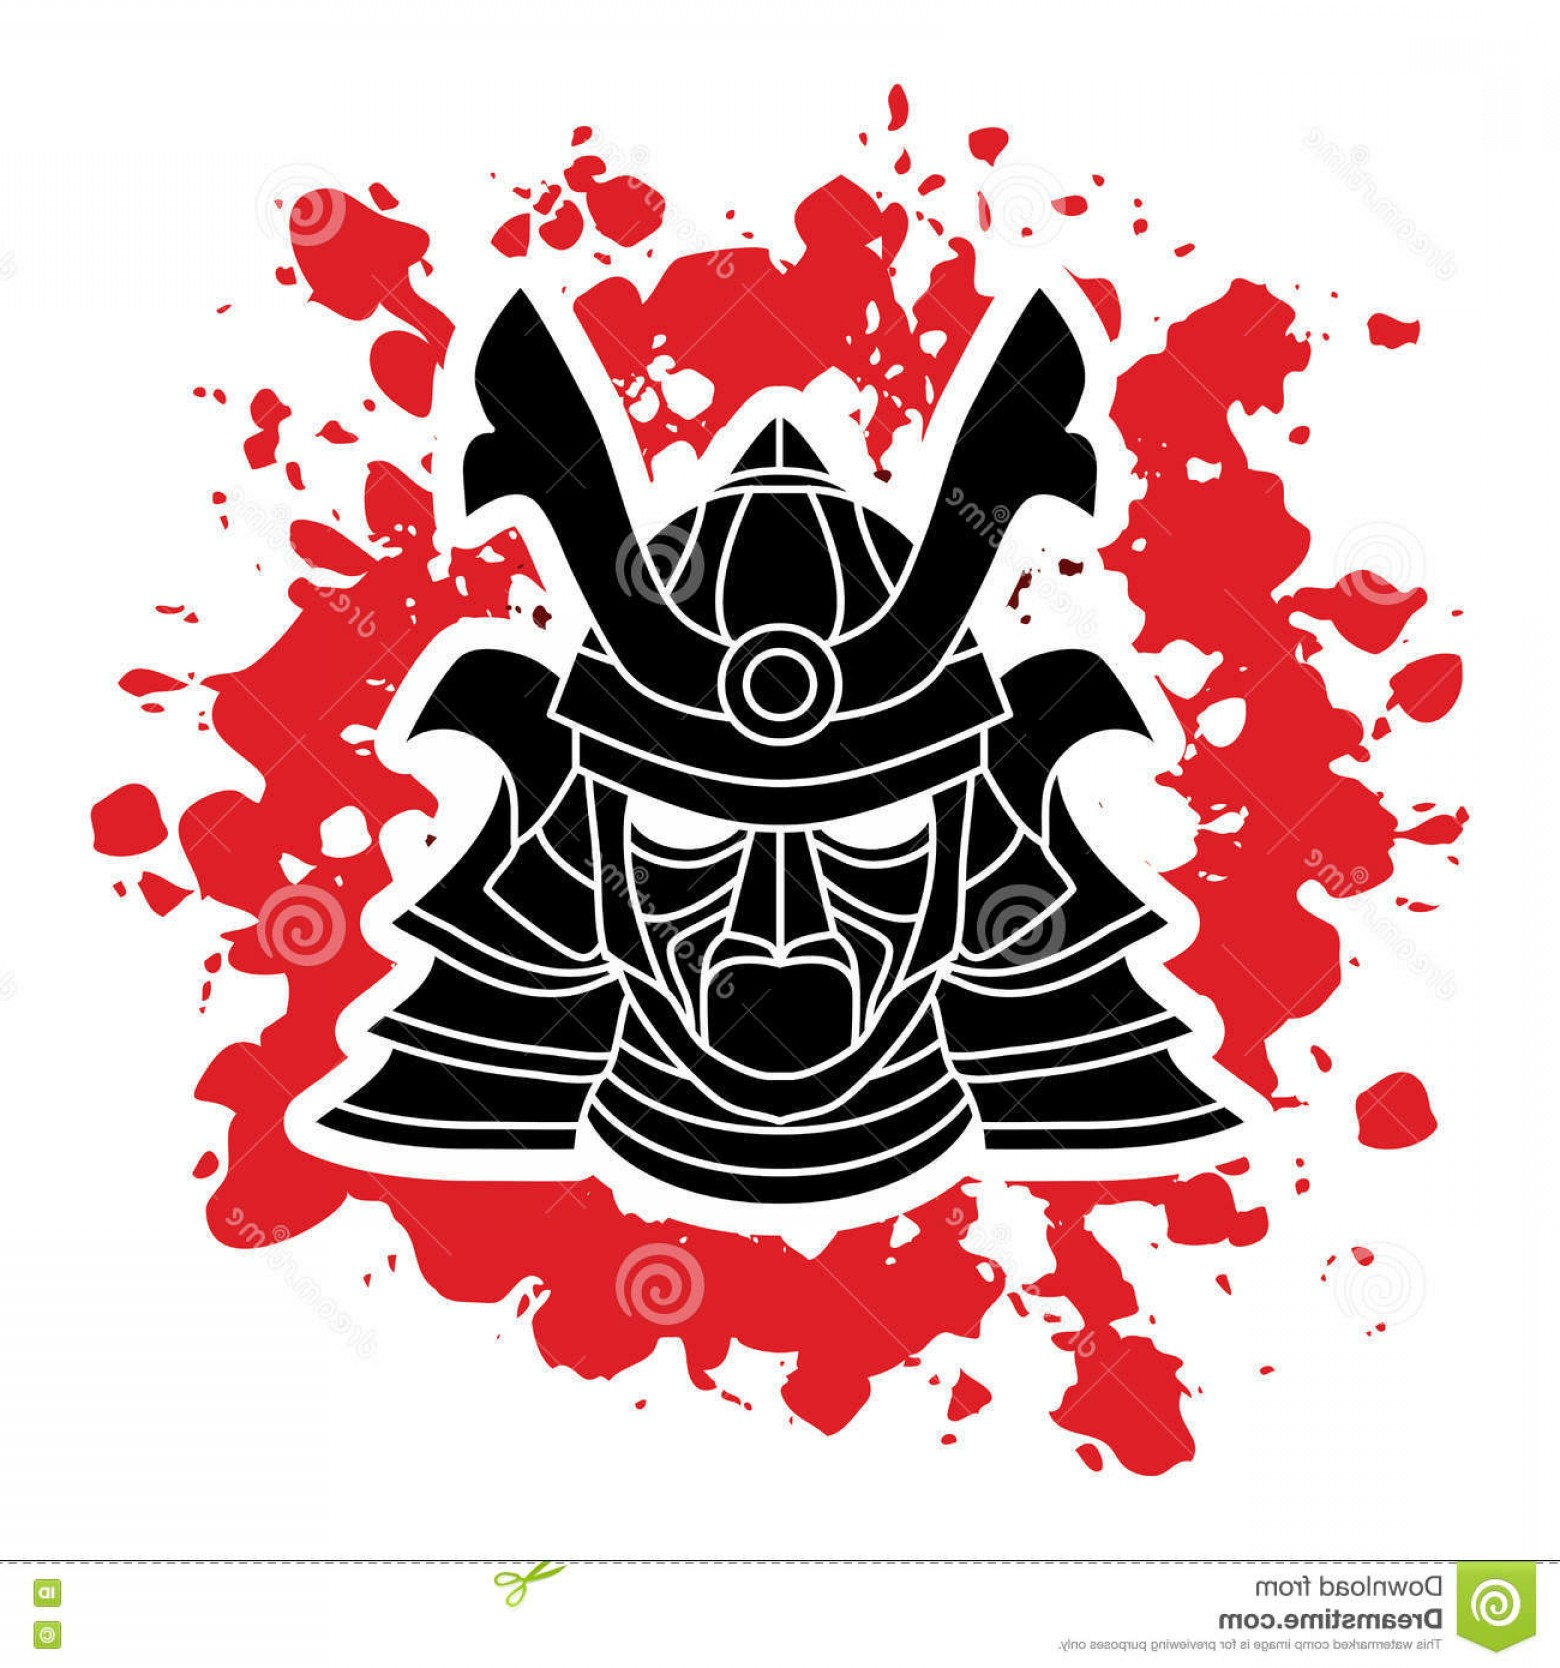 Red Samurai Vector: Stock Illustration Samurai Warrior Mask Designed Splatter Blood Background Graphic Vector Image